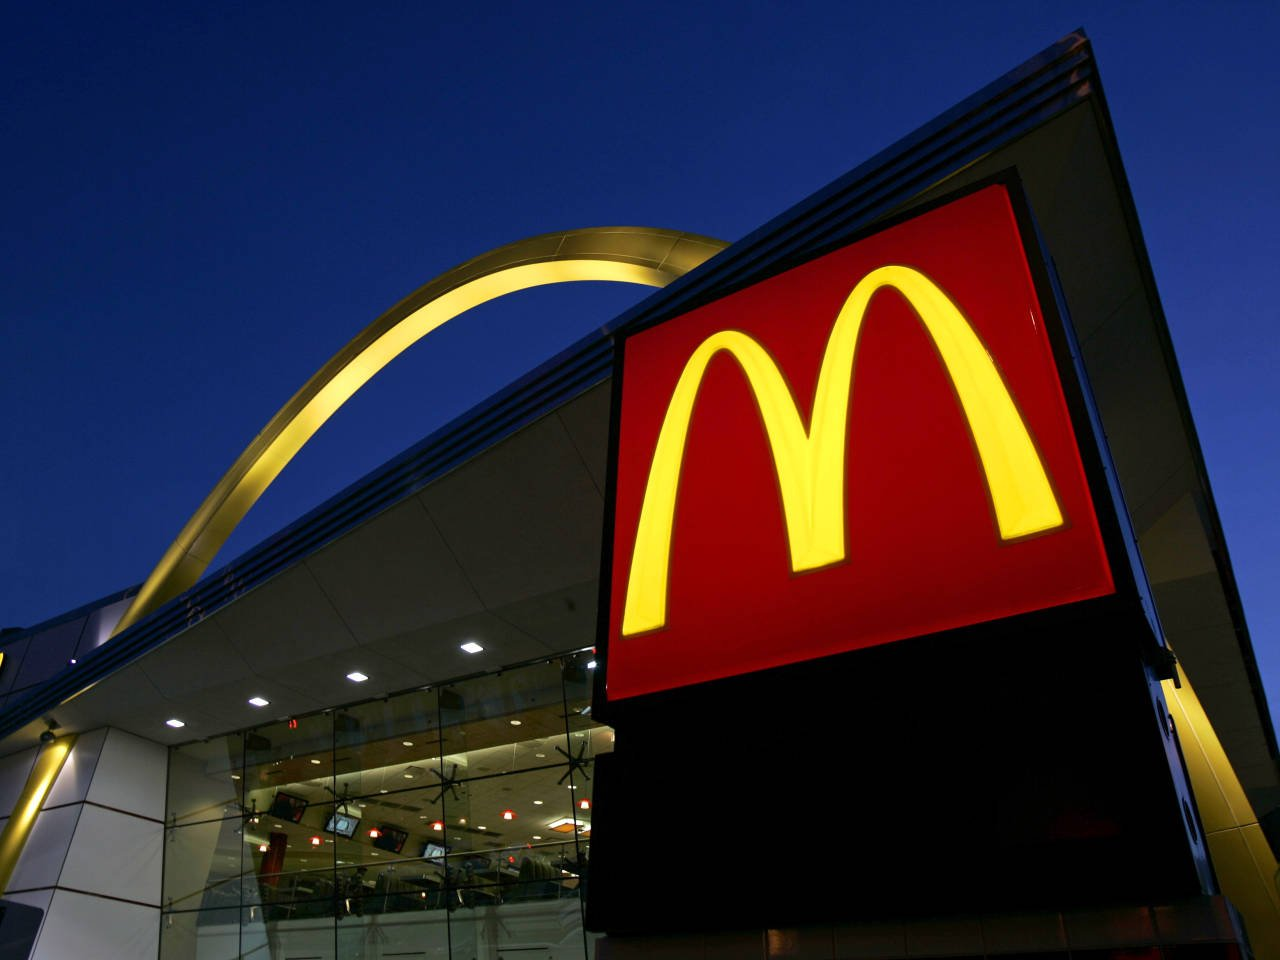 McDonalds Golden Arches Get Flipped Upside Down To Make Social Statement